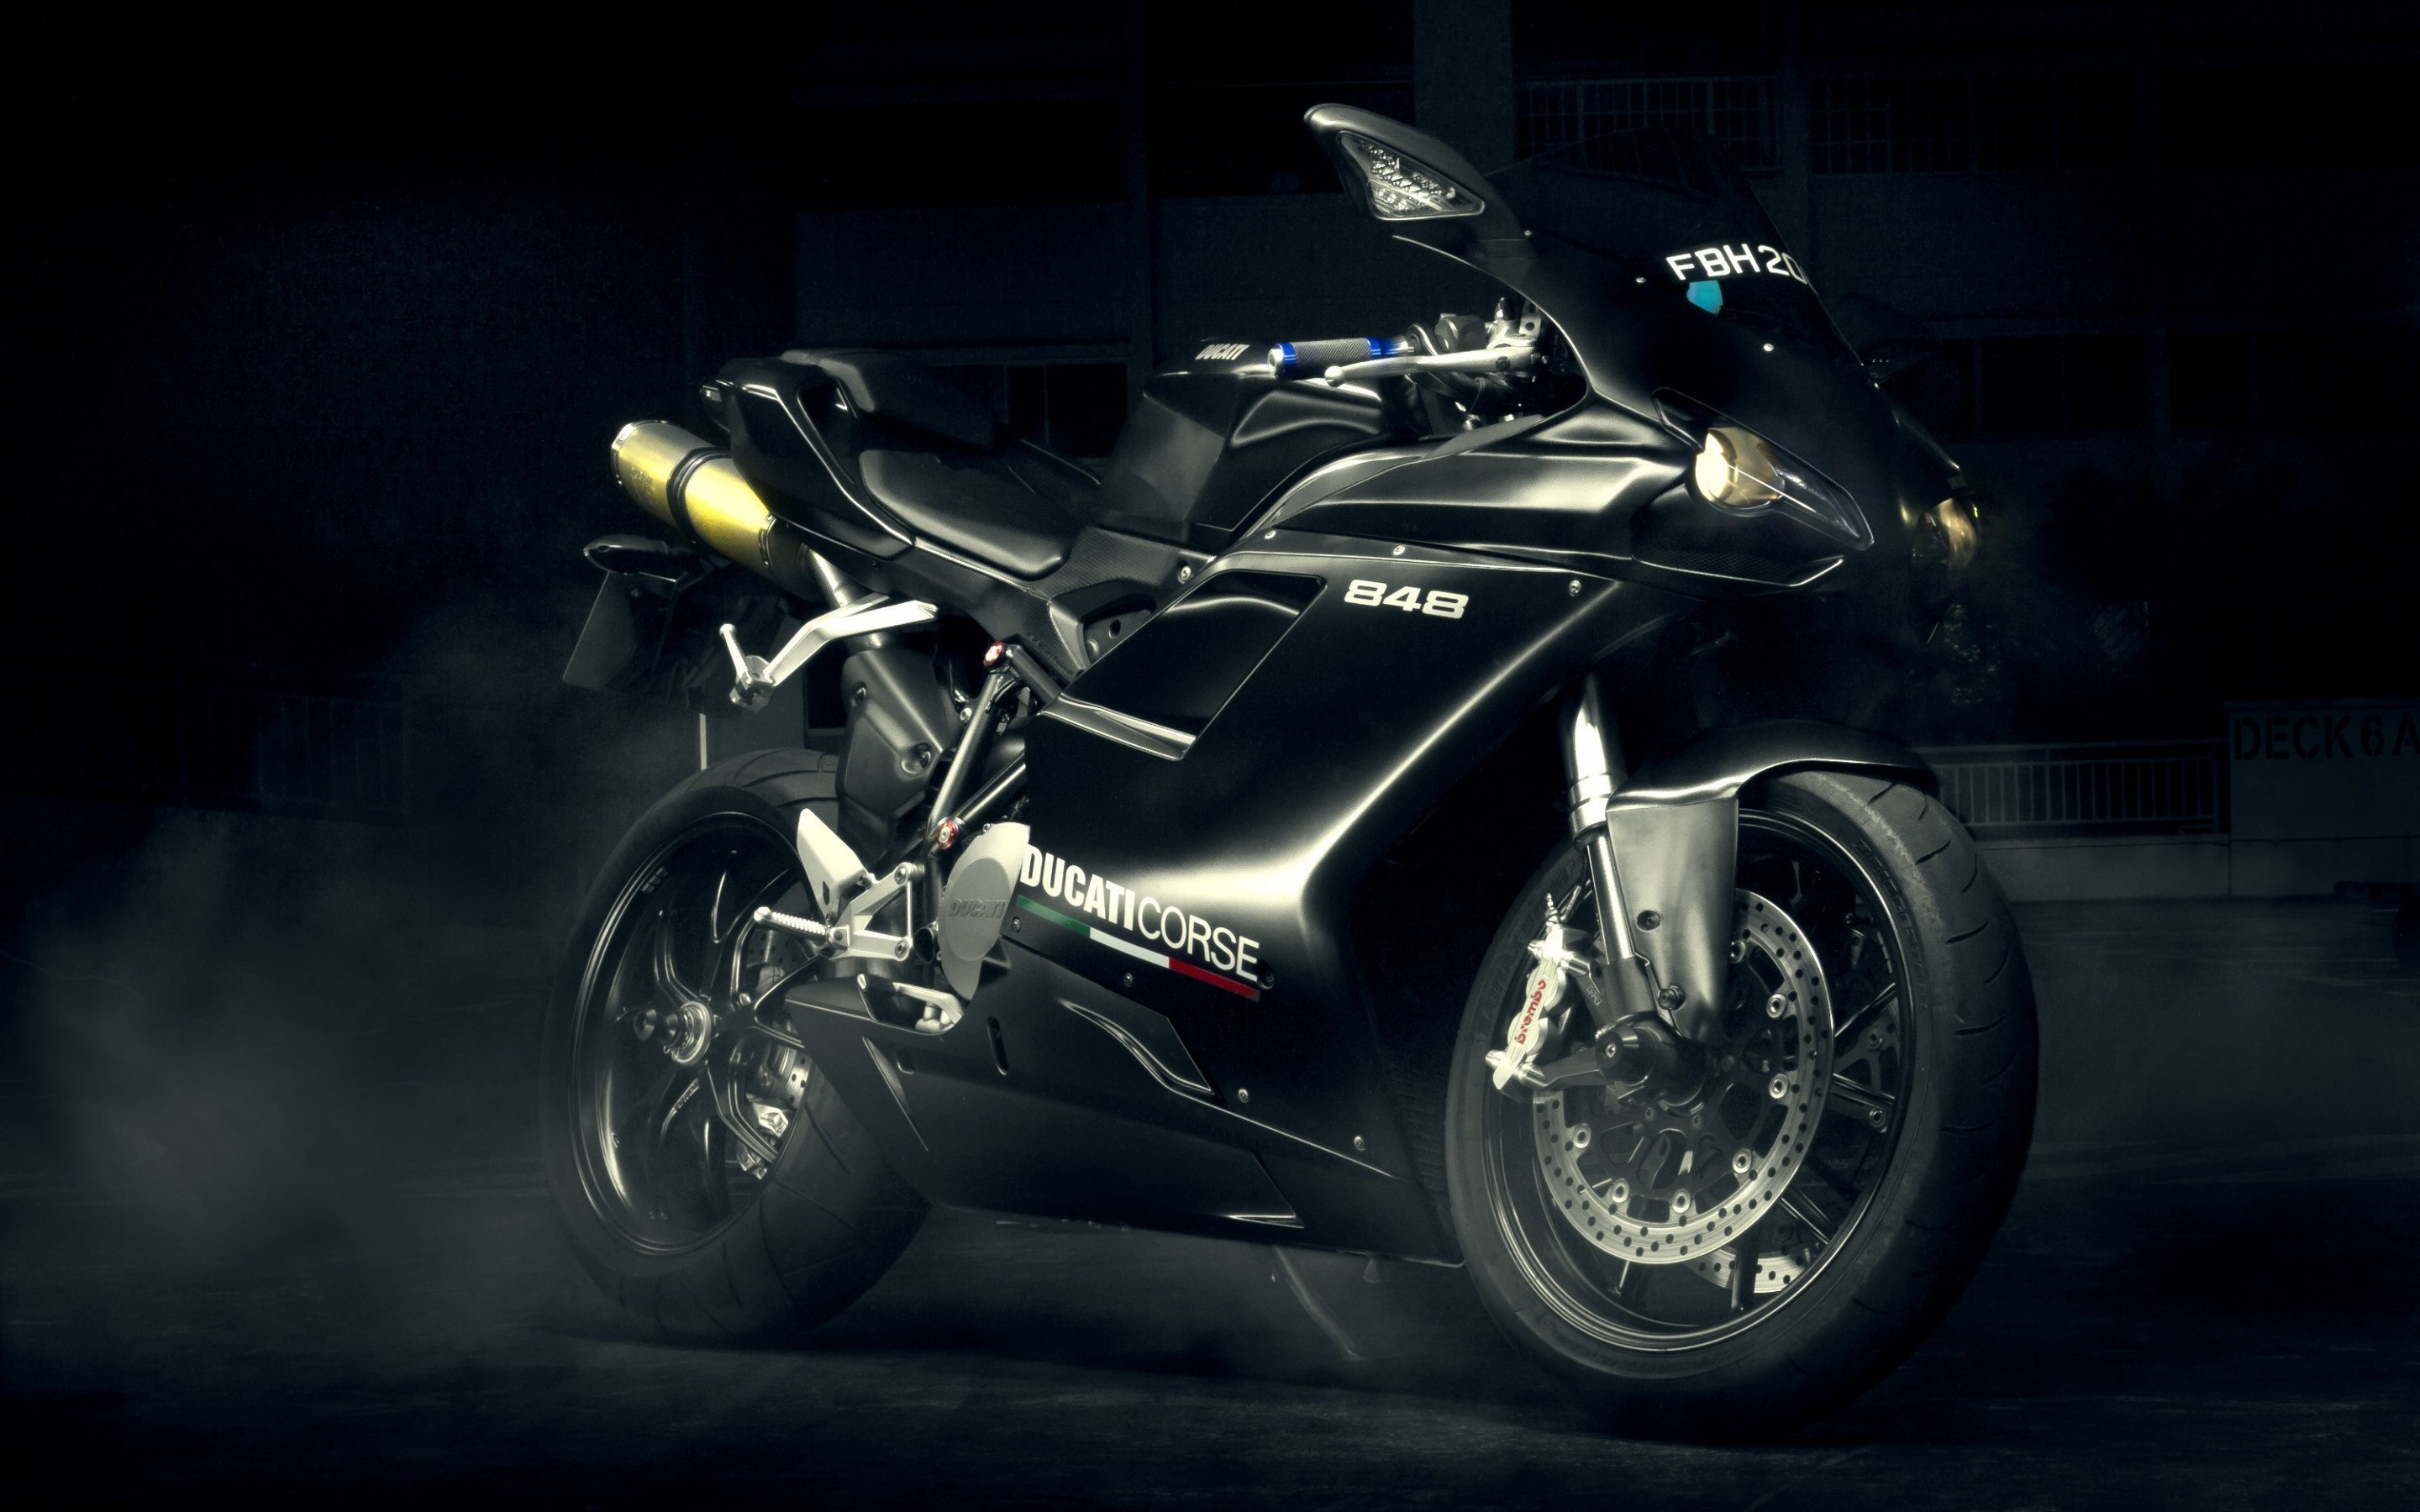 Ducati 848 Wallpaper for Desktop 2880x1800